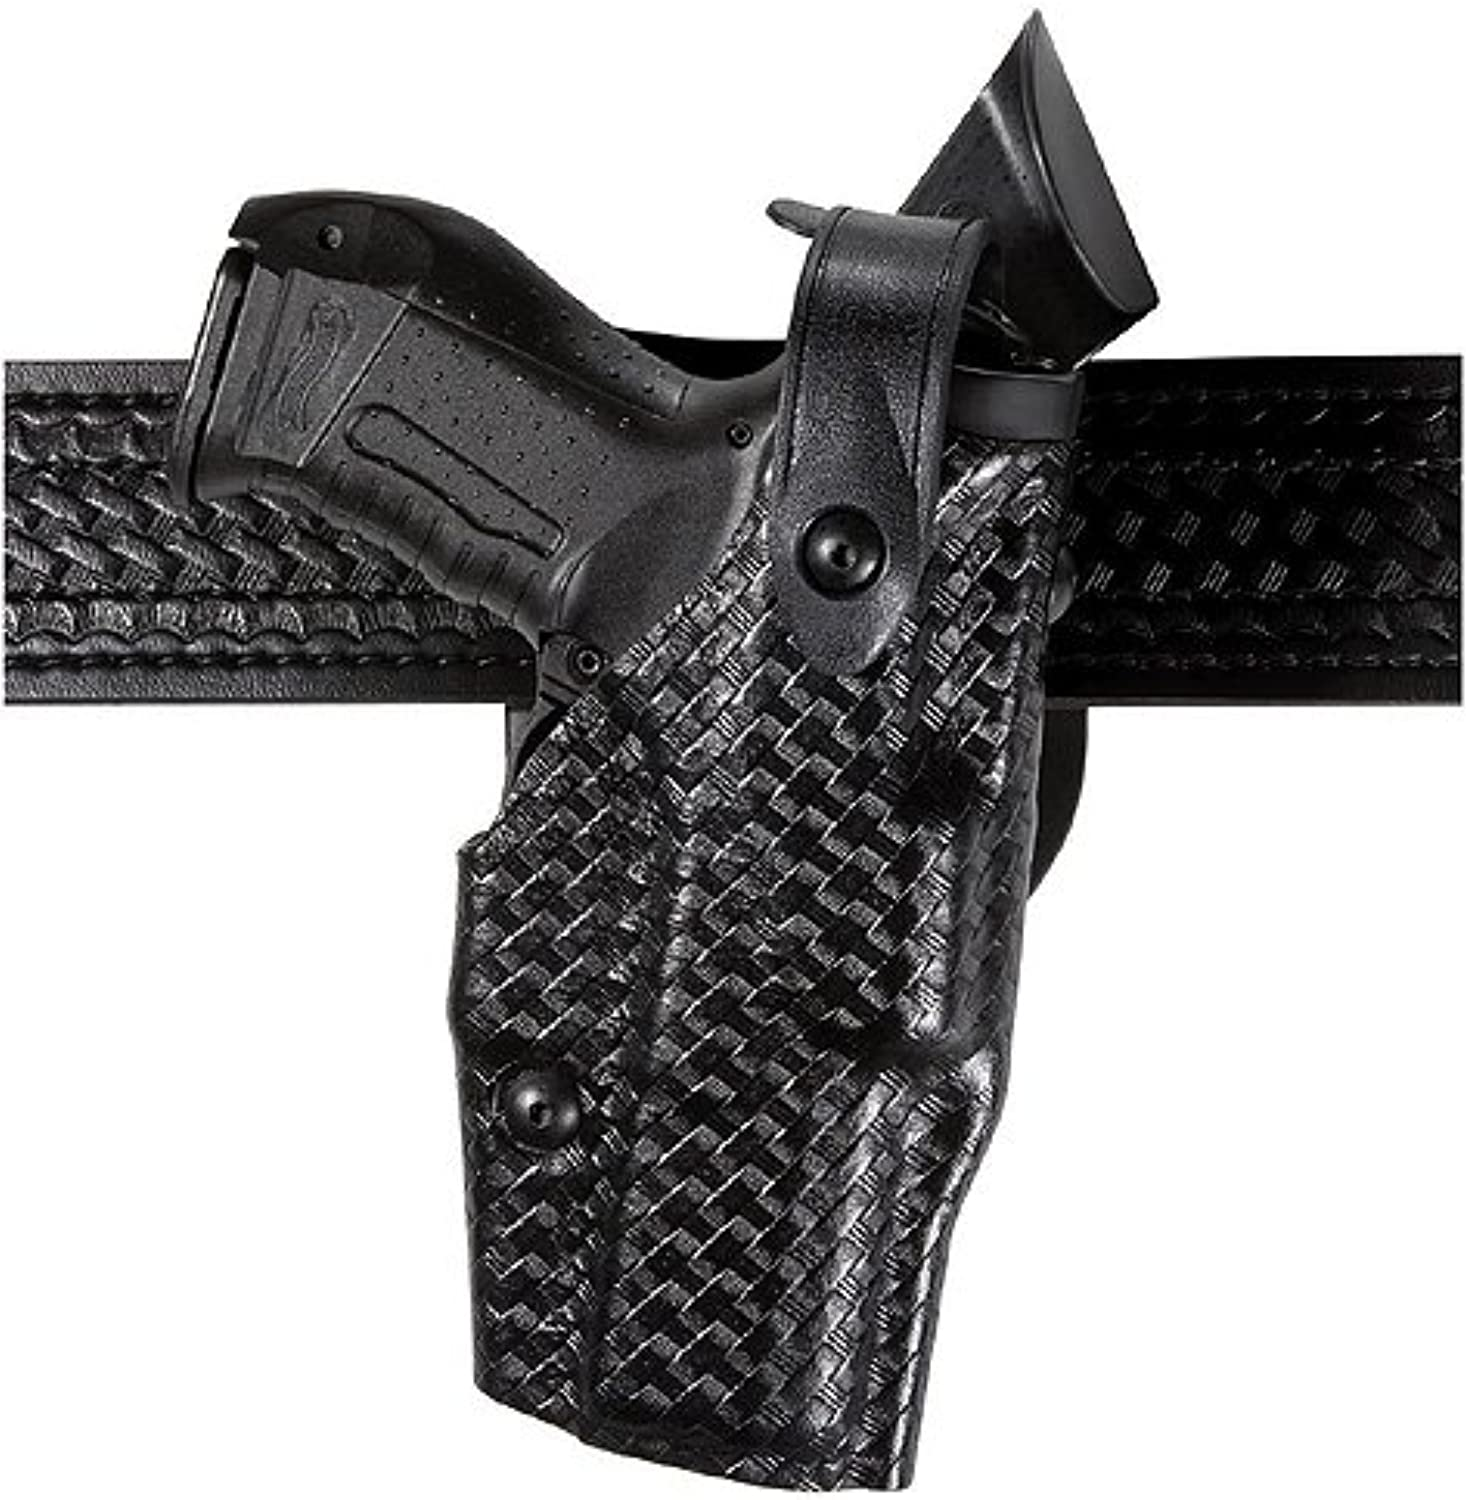 Safariland 6360 Als Level Iii W  Ride Ubl Holster  Plain Black, Right Hand 636014861